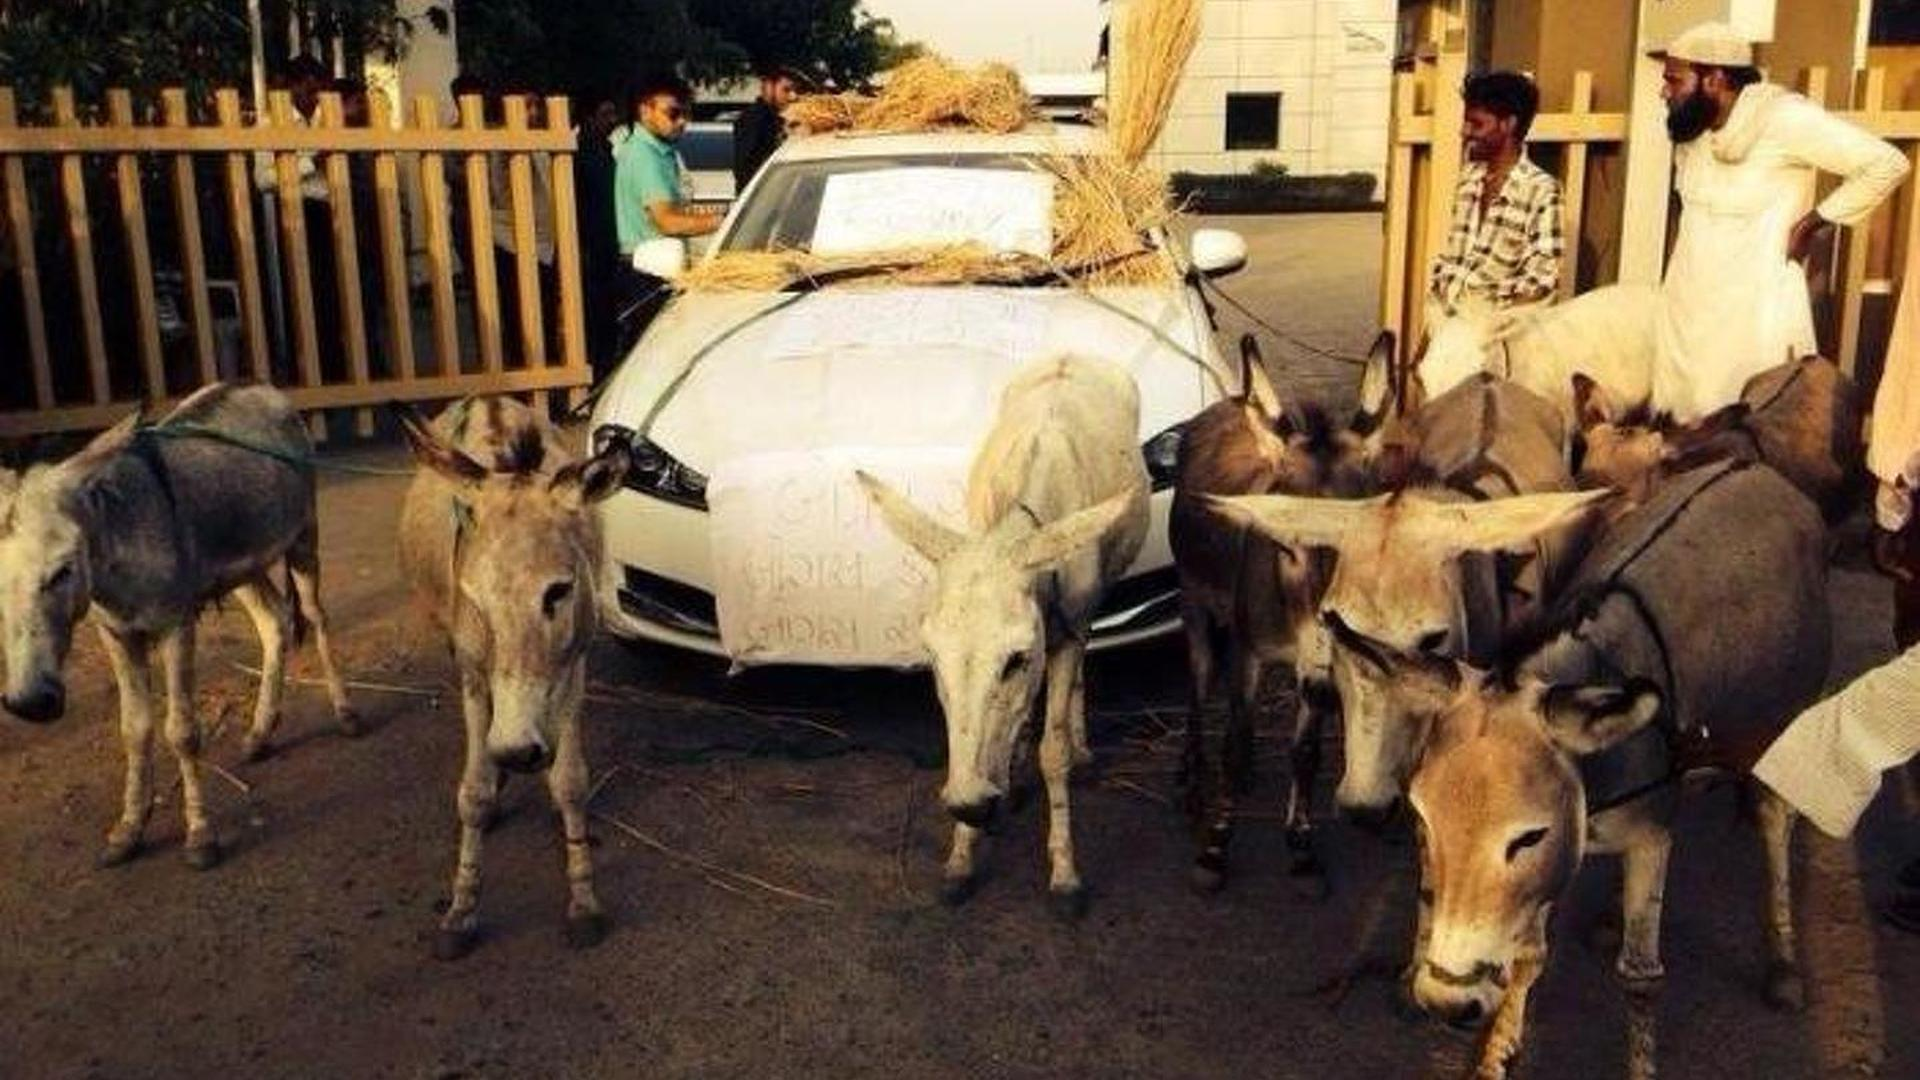 Unhappy Jaguar XF owner protests in India, says donkeys are better